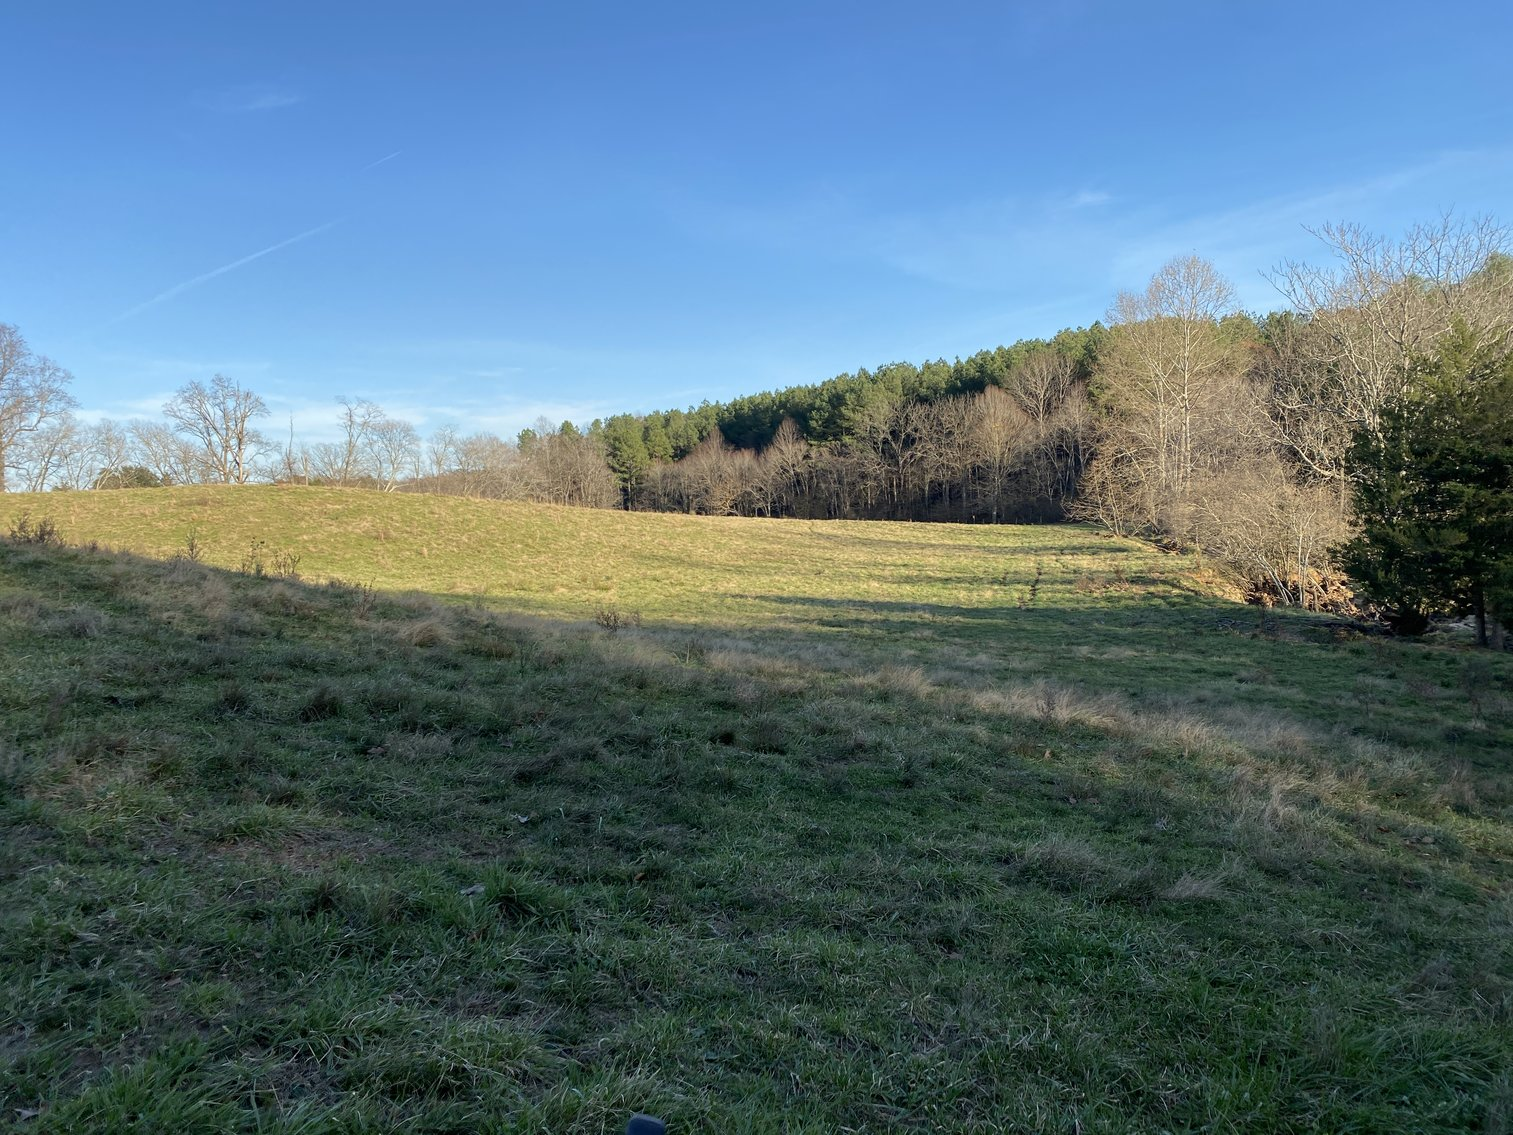 Image for 25.13 +/- Acres w/Creek on Property & 350' +/- of Road Frontage in Madison County, VA--SELLING to the HIGHEST BIDDER!!